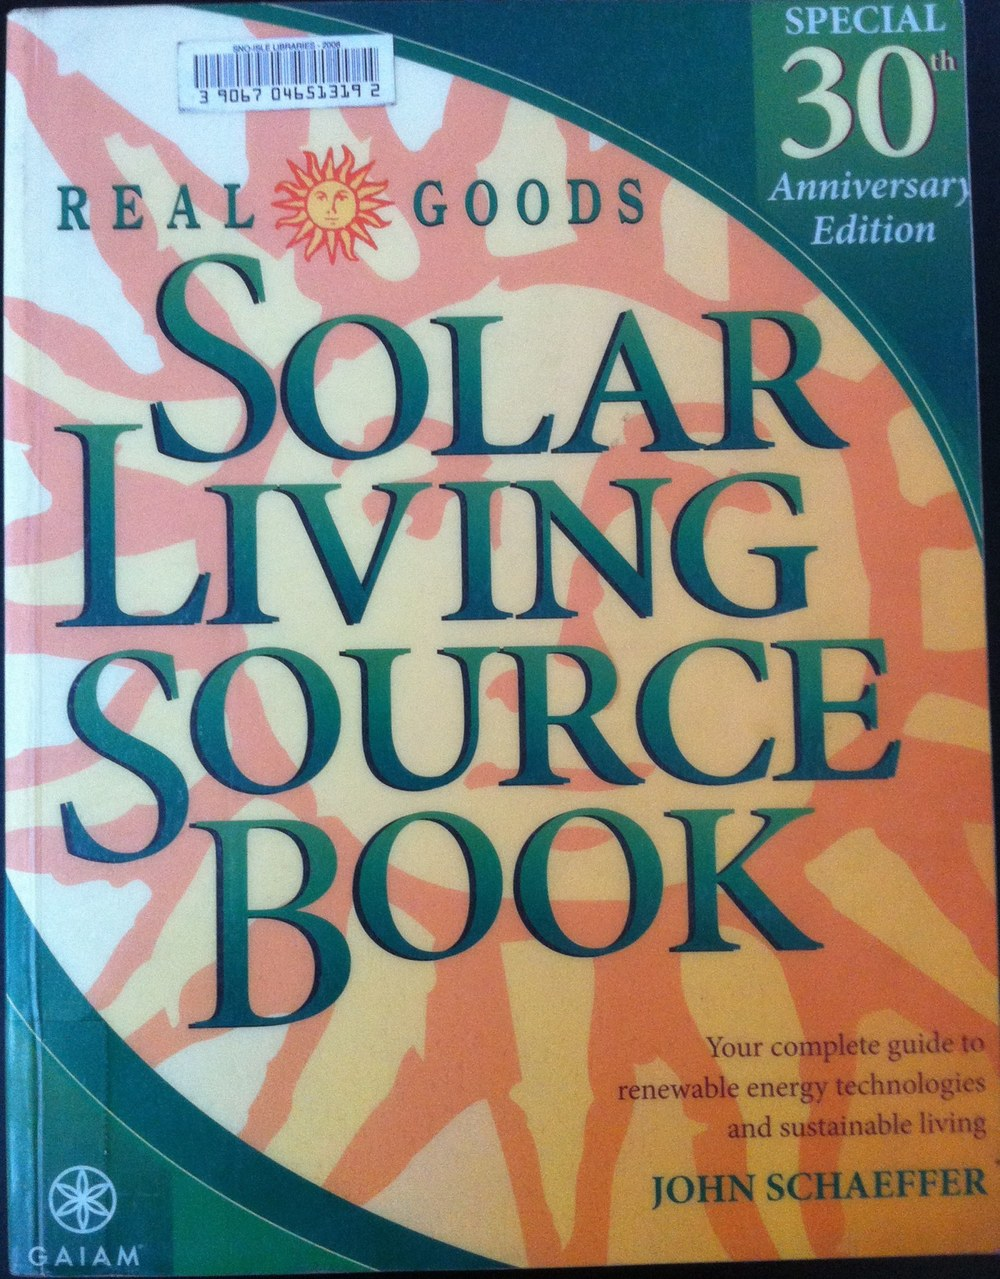 Real Goods Solar Living Source Book John Schaeffer